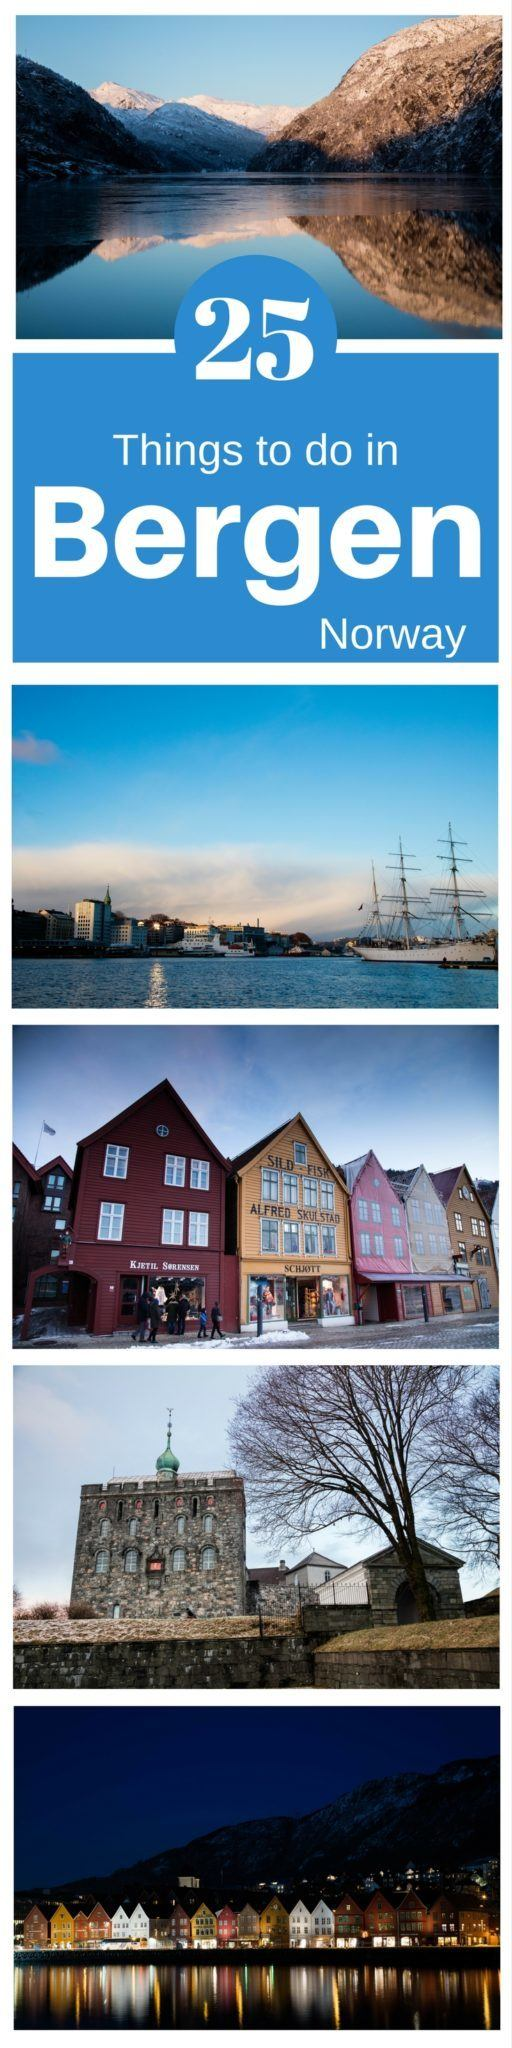 Winter Travel Planning! Go to Bergen, Norway. We've listed 25 great things to do!